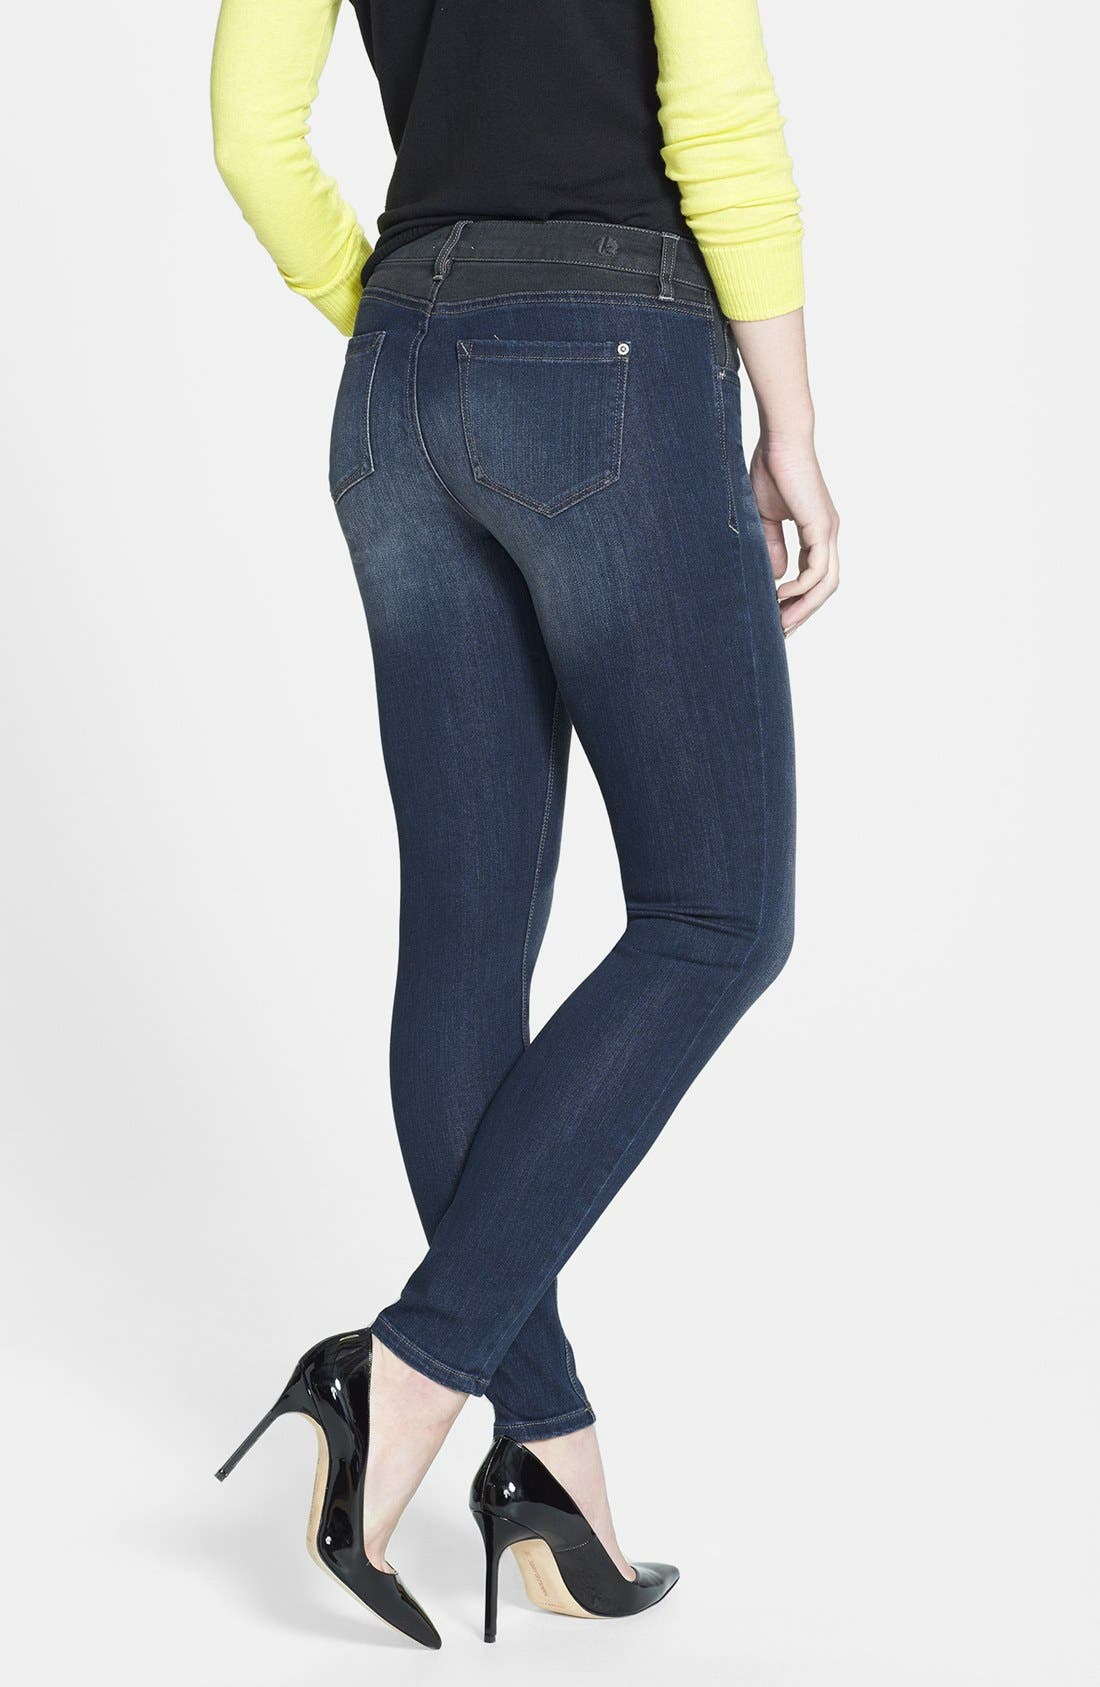 Alternate Image 2  - kensie 'Ankle Biter' Colorblock Skinny Jeans (Electric Youth)